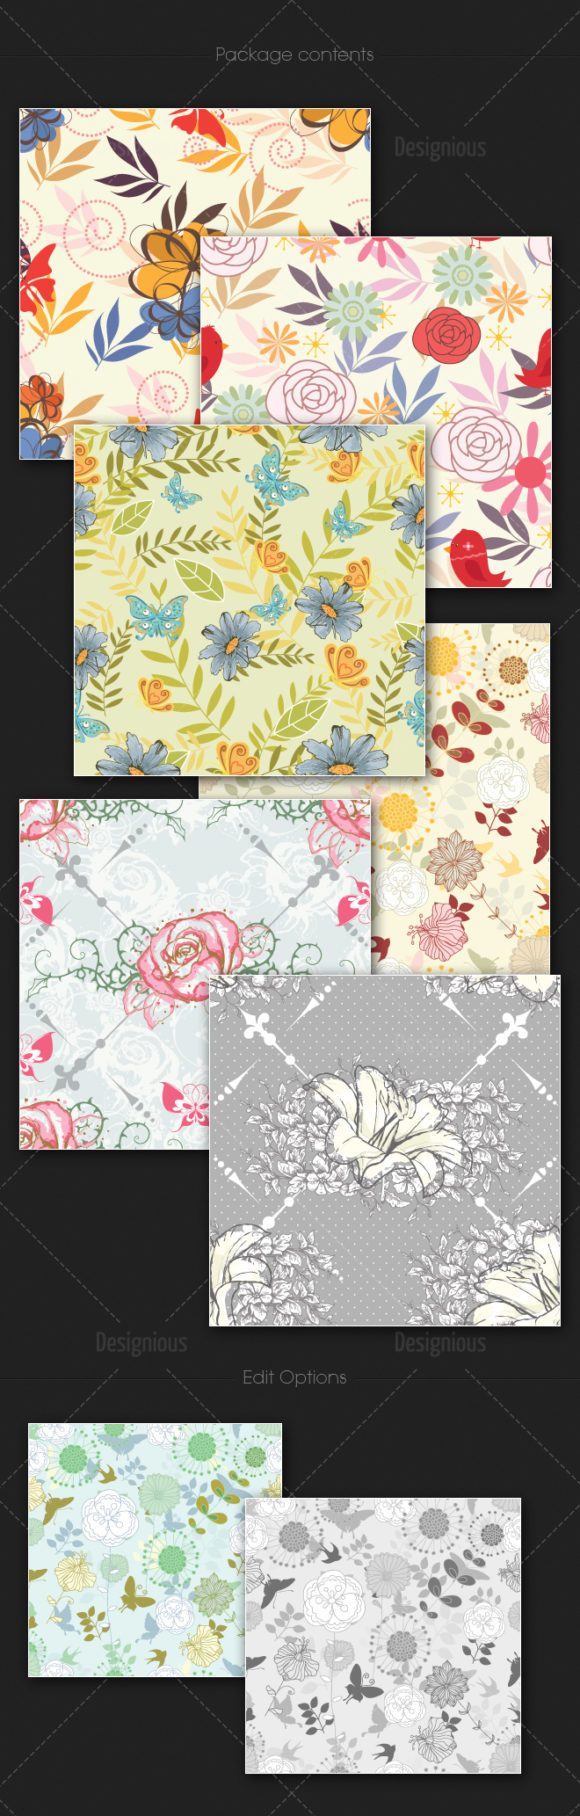 Seamless Patterns Vector Pack 112 Vector Patterns [tag]